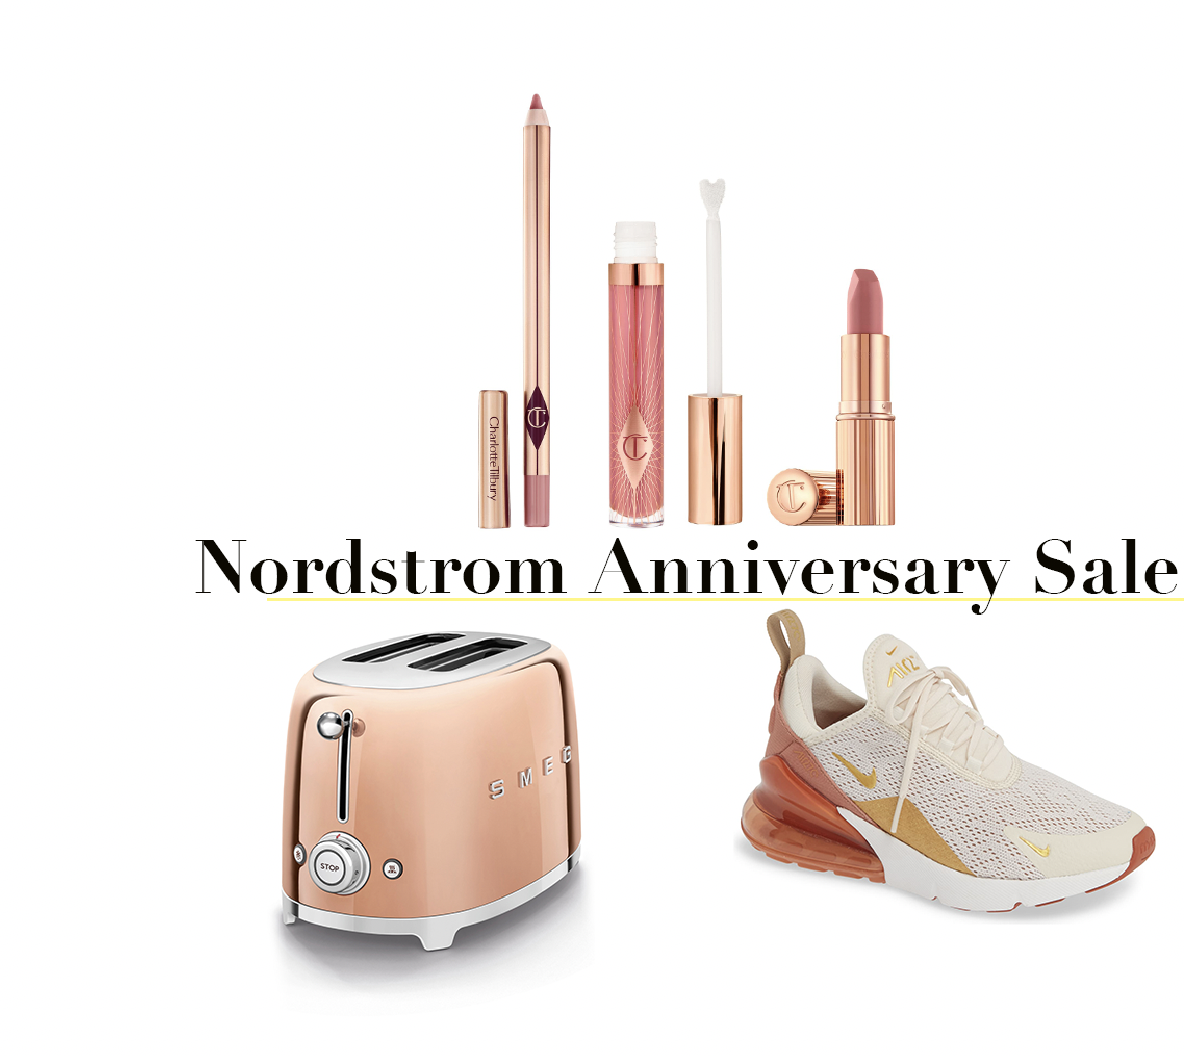 What I Would Buy From The Nordstrom Anniversary Sale